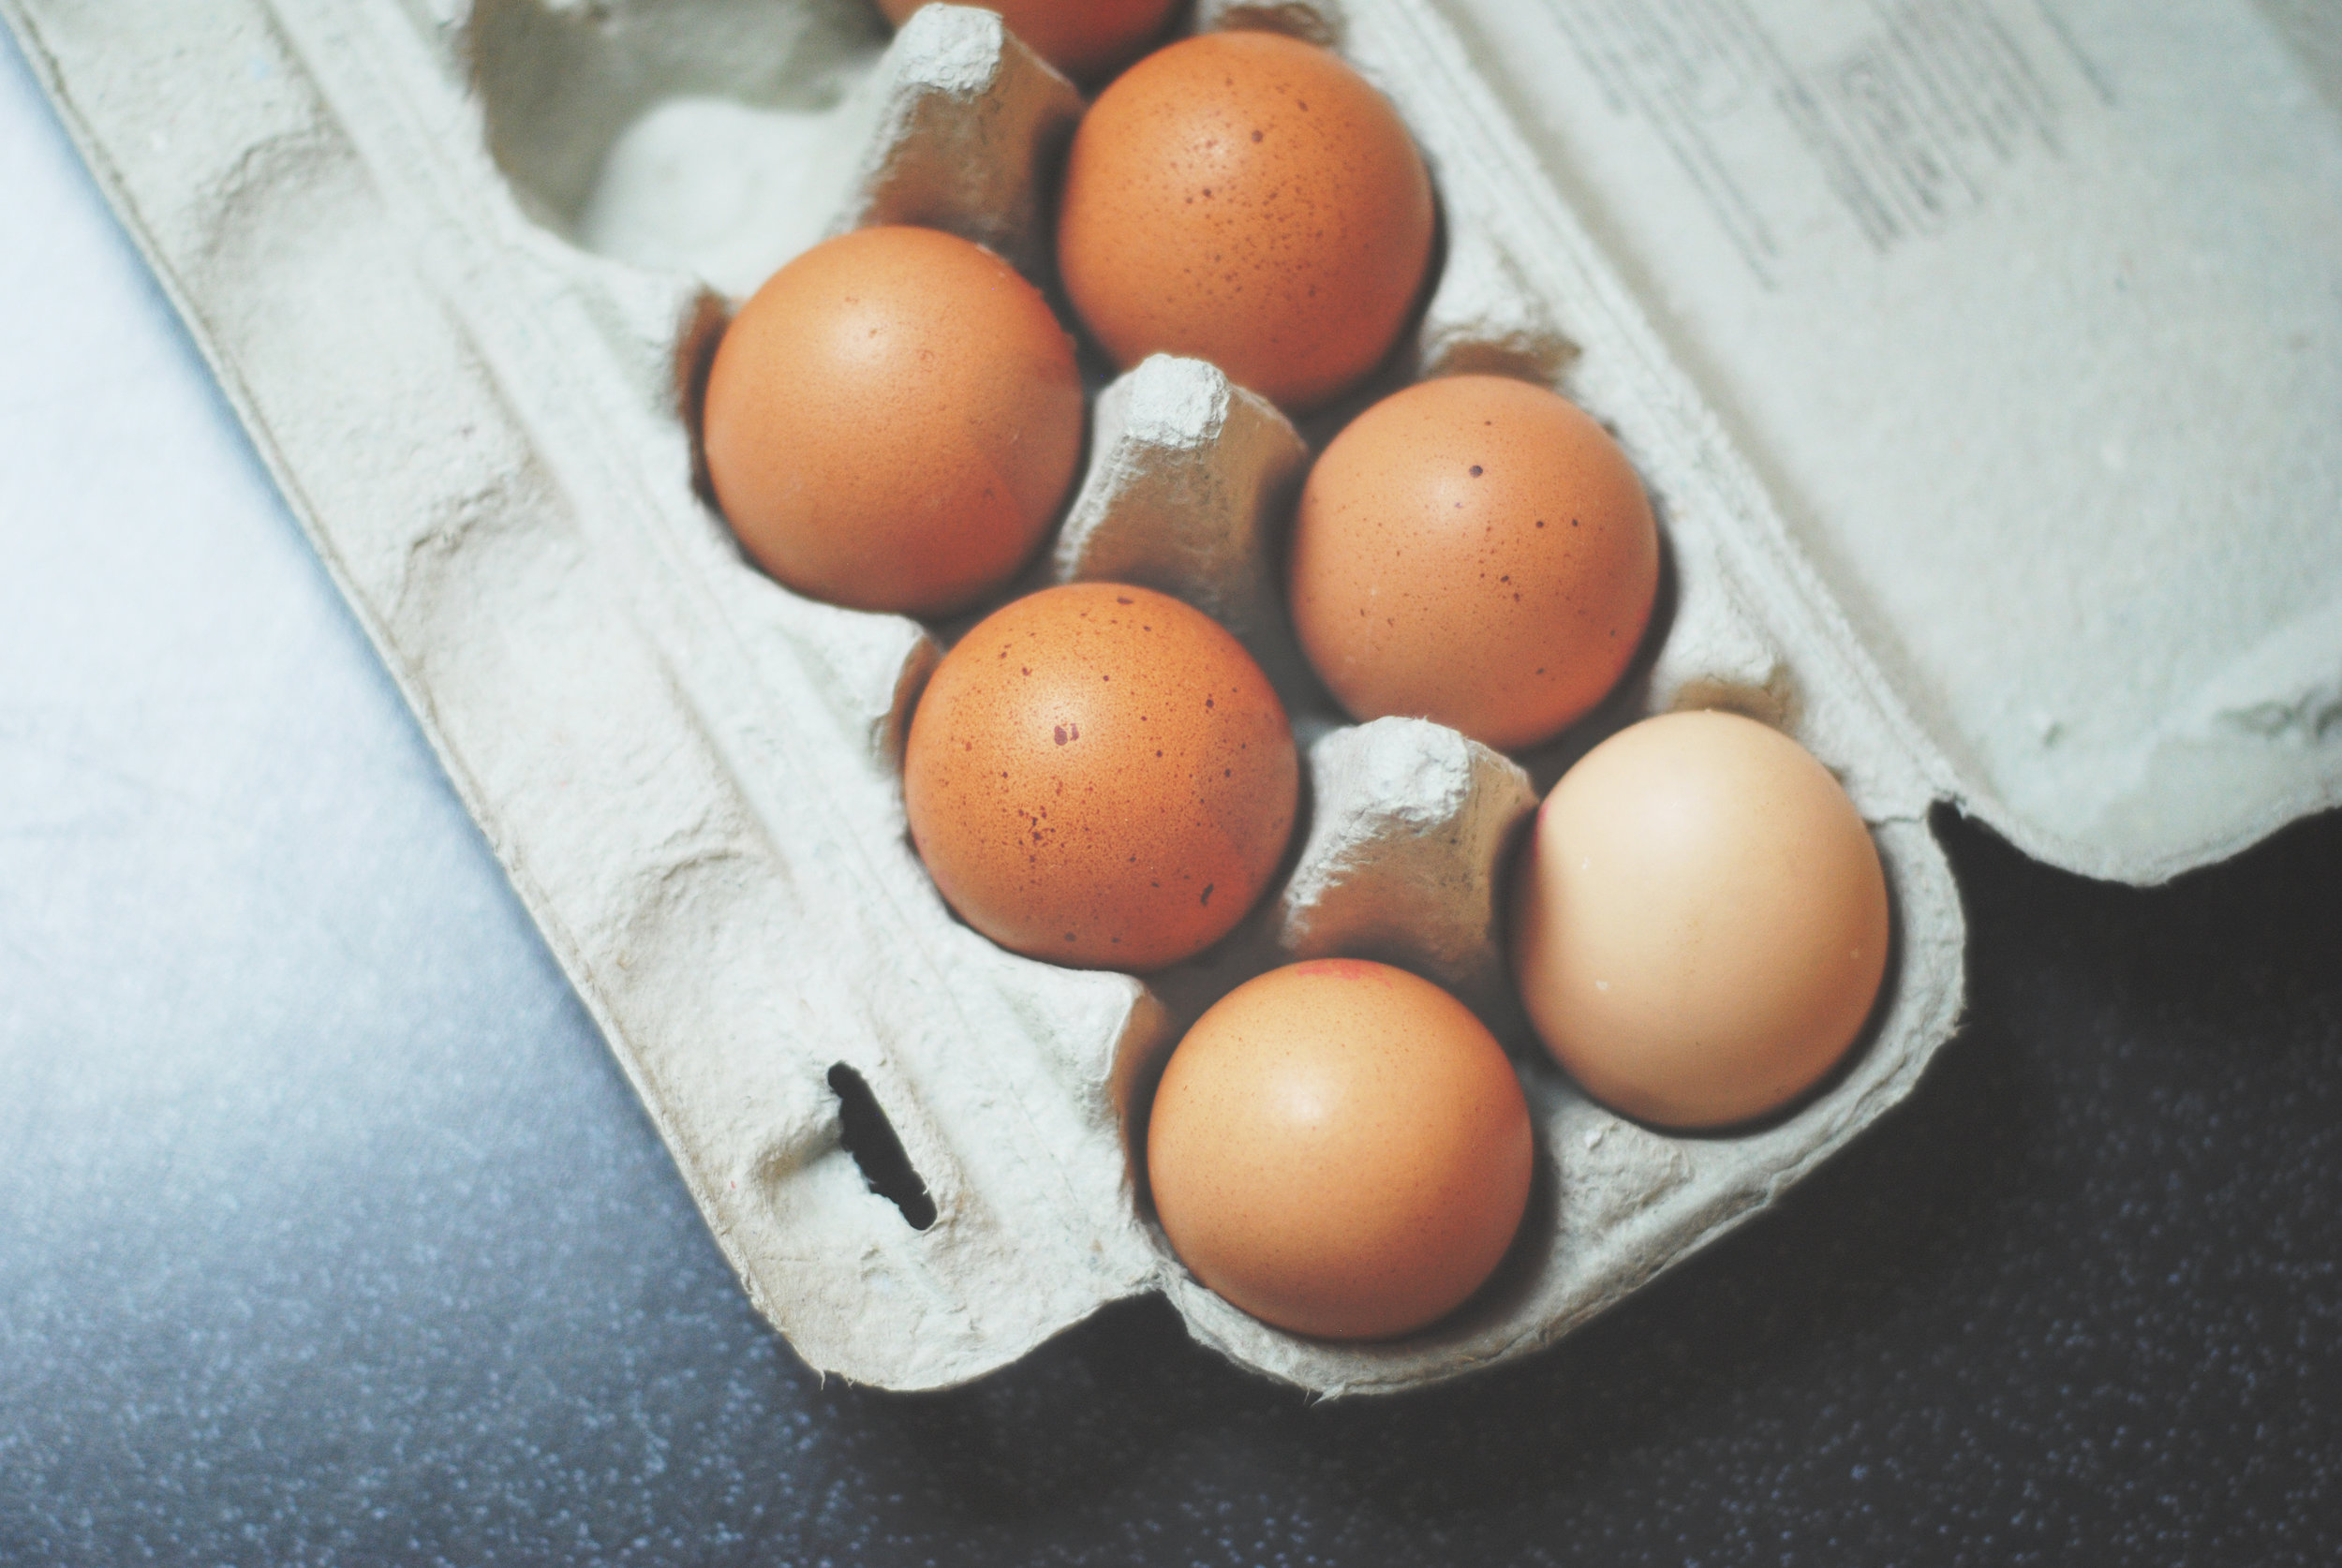 The almost anything goes approach to labeling eggs has made it hard to know what you're getting.